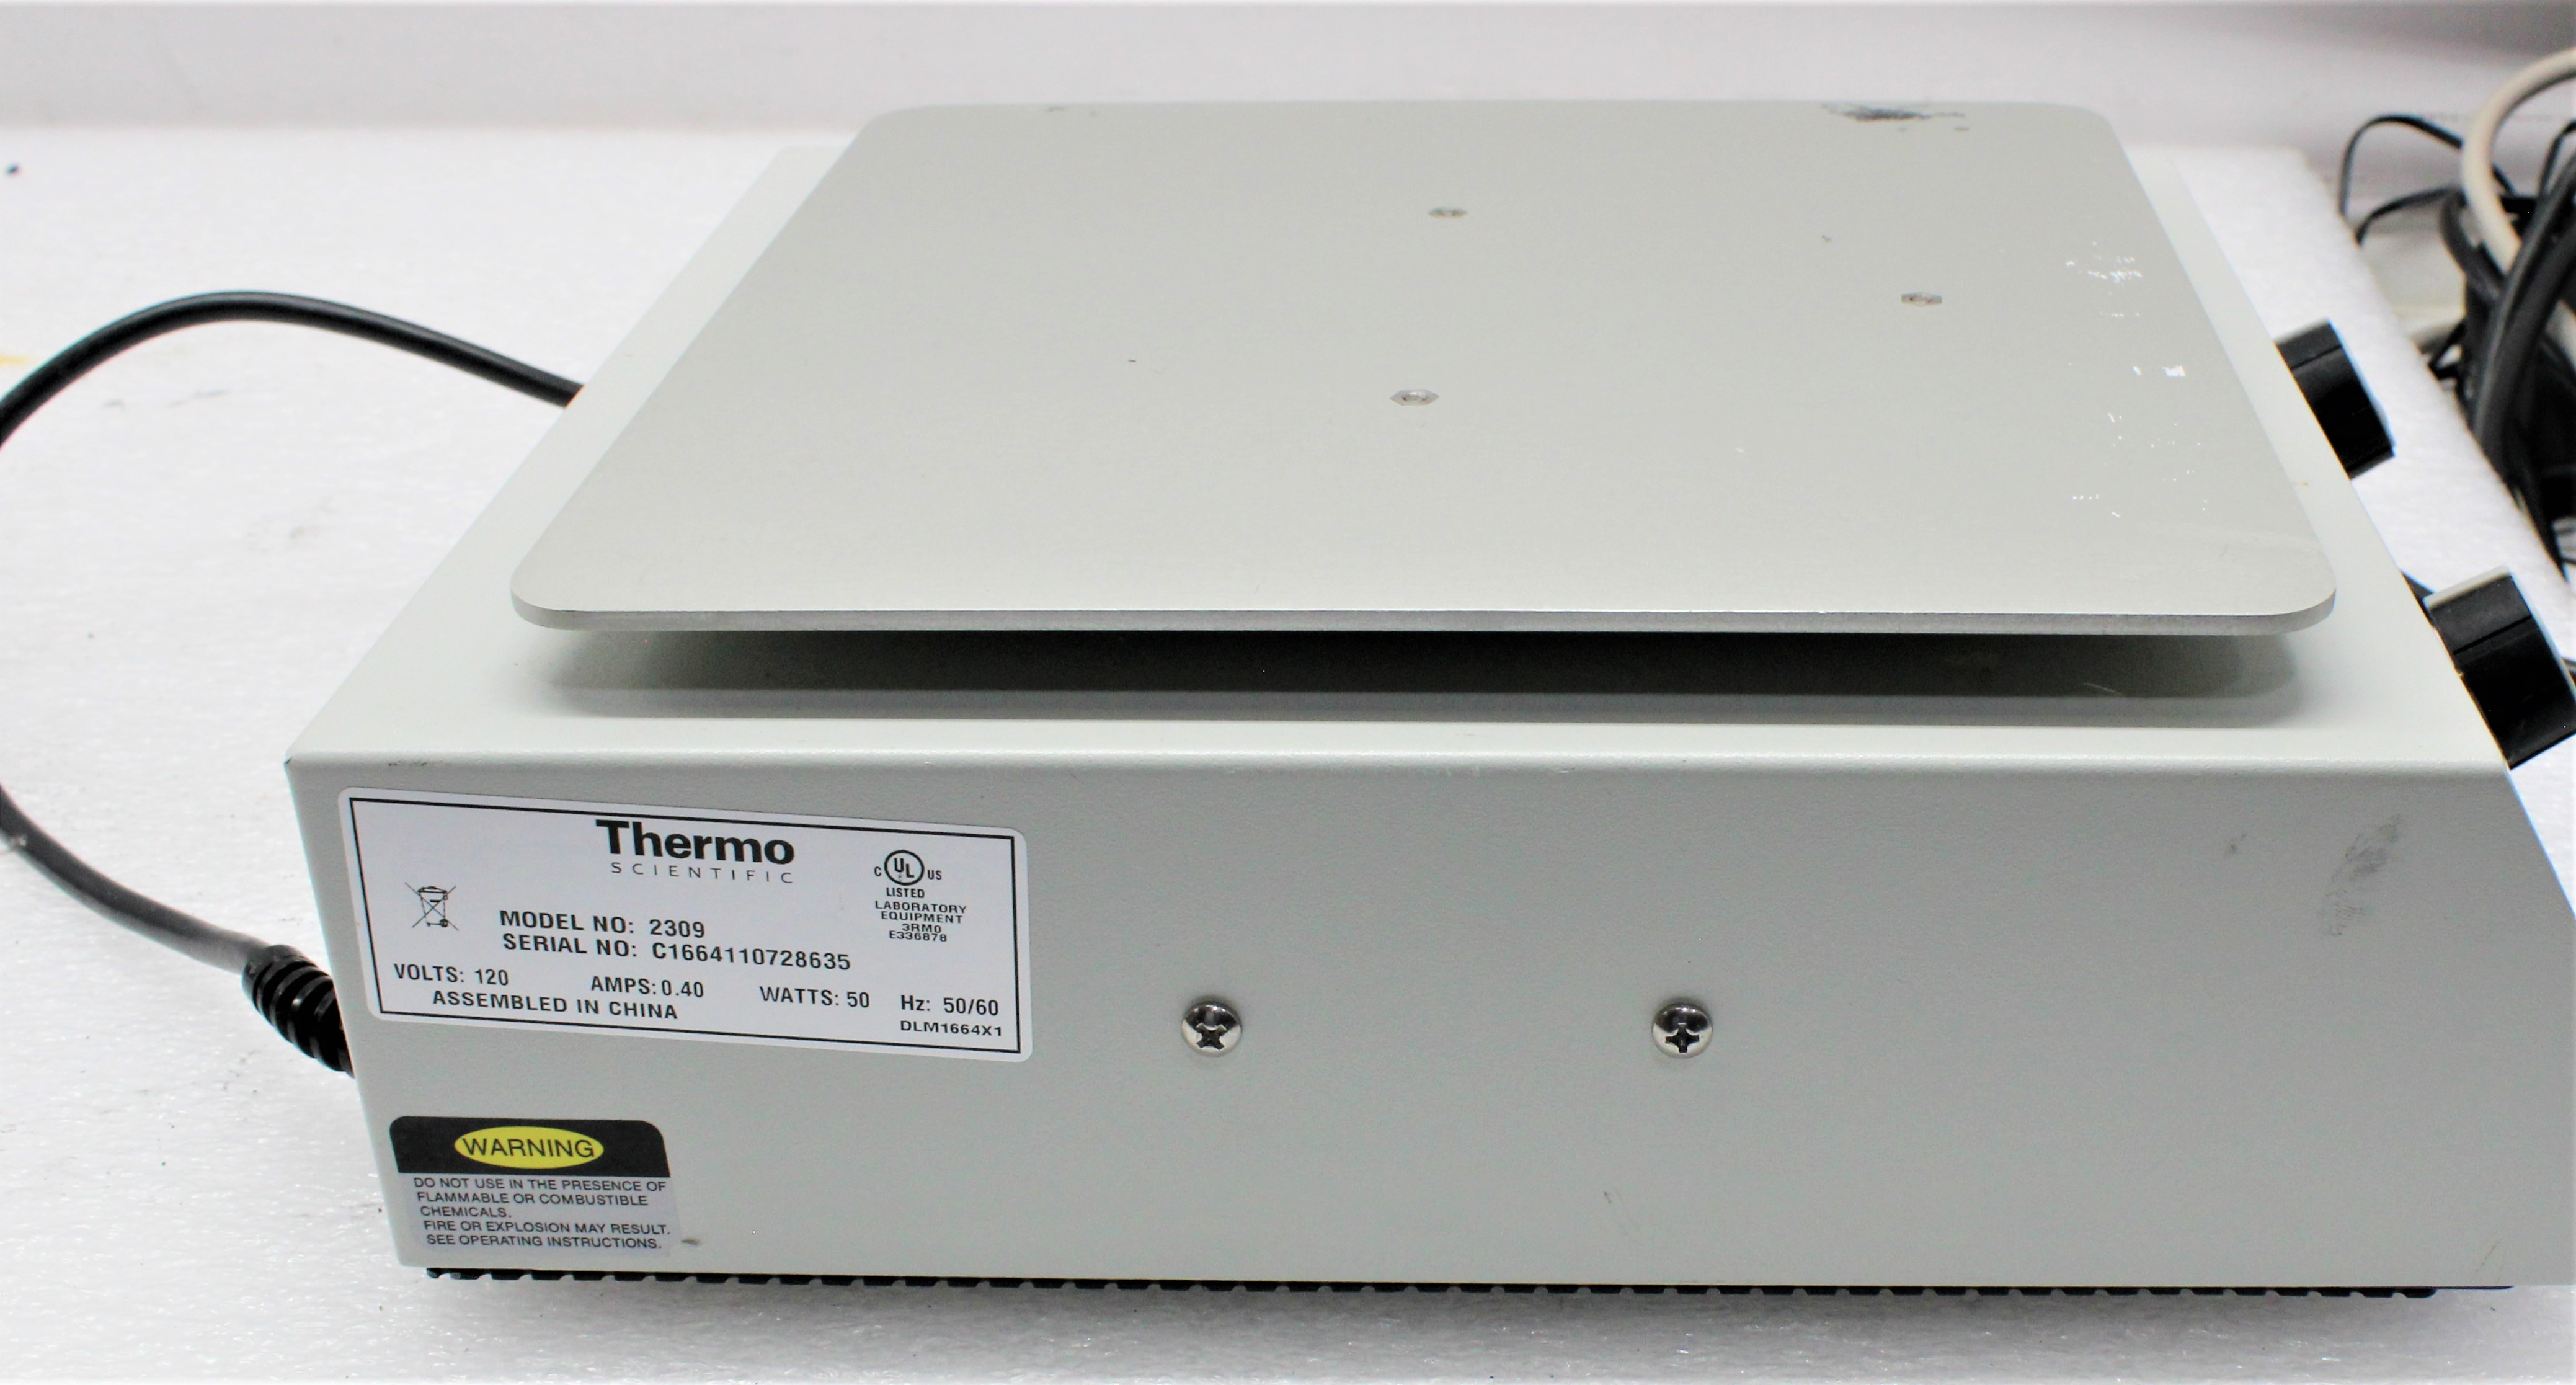 Image THERMO SCIENTIFIC 2309 Lab Rotator - 9in x 9in Platform 1586983